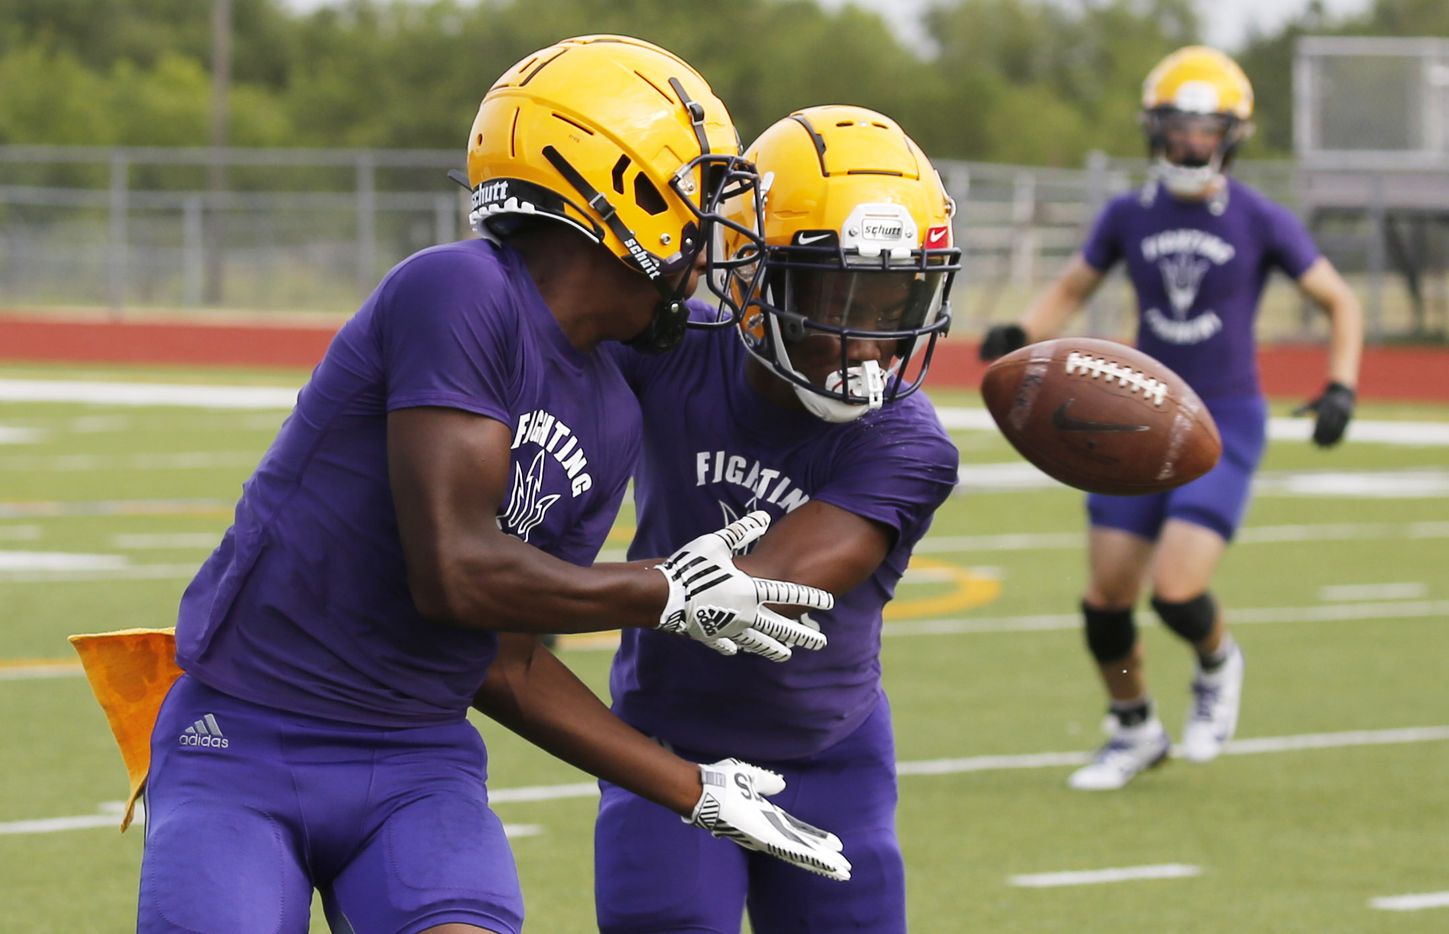 Farmersville's Jeralin Craddock (right) breaks up a pass intended for Farmersville's Noah Cottle (left) during the first day of high school football practice for 4A's Farmersville High School in Farmersville, Texas on Monday, August 3, 2020. (Vernon Bryant/The Dallas Morning News)